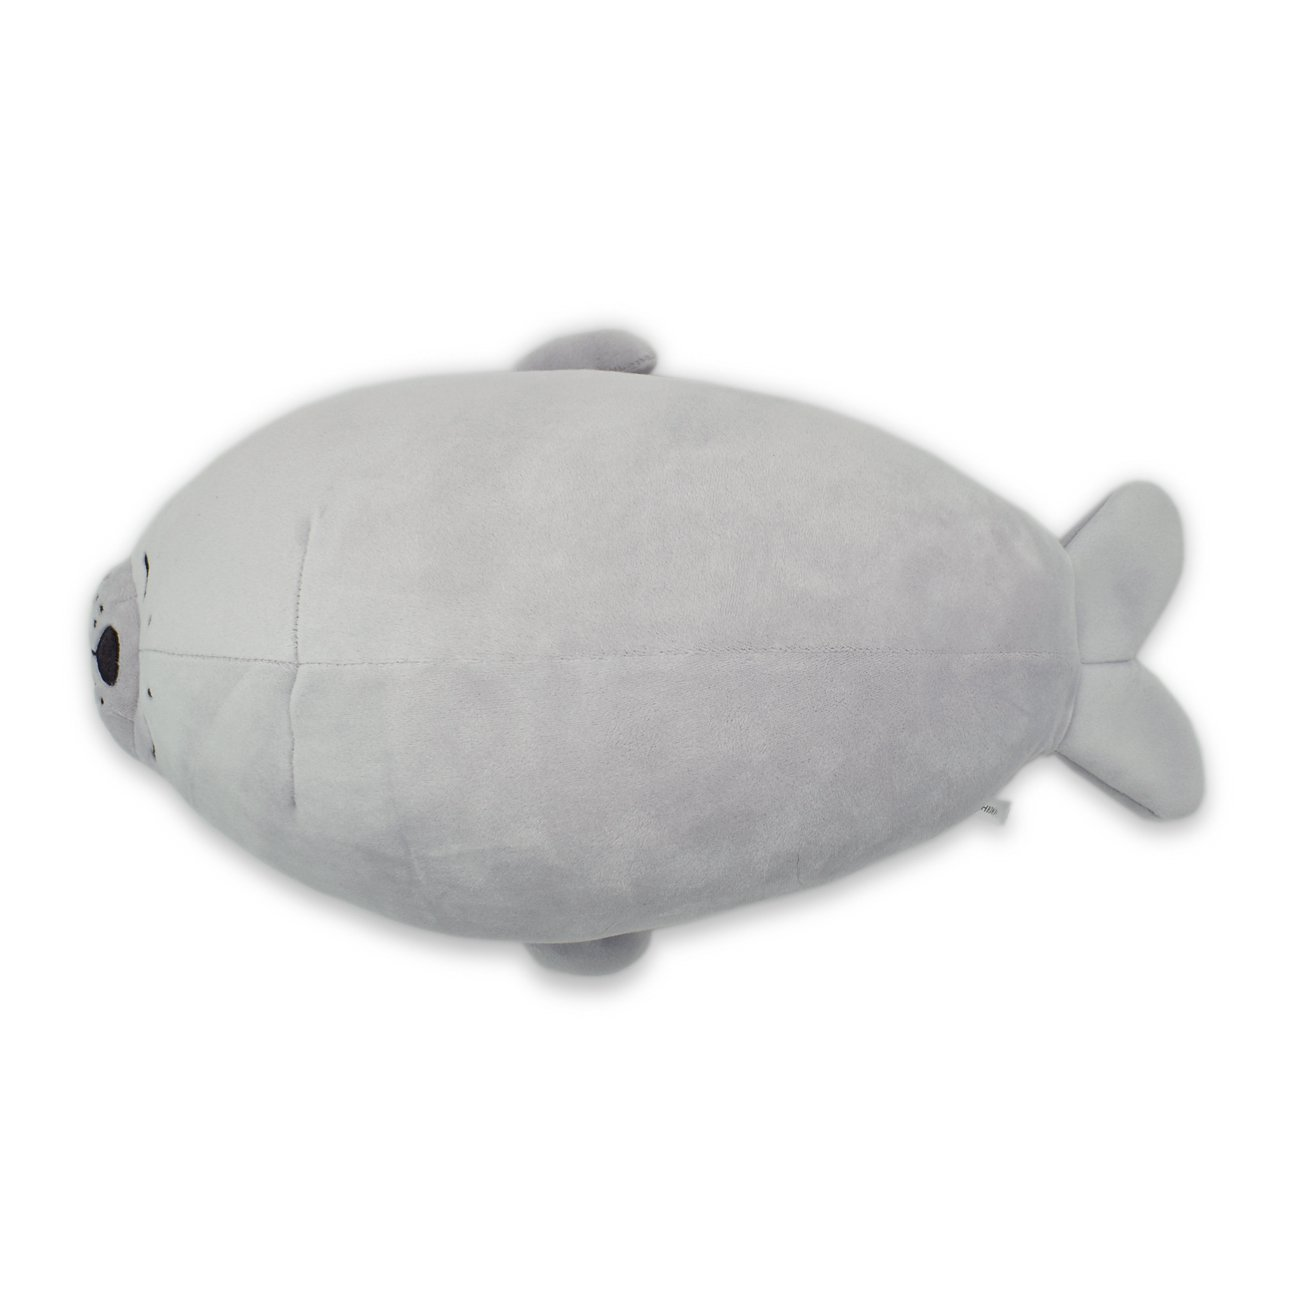 Sunyou Plush Cute Seal Pillow - Stuffed Cotton Soft Animal Toy Grey 27.5 inch/70cm (Large) Gift For Friend Kid/Adult On Friendship Day by Sunyou (Image #2)